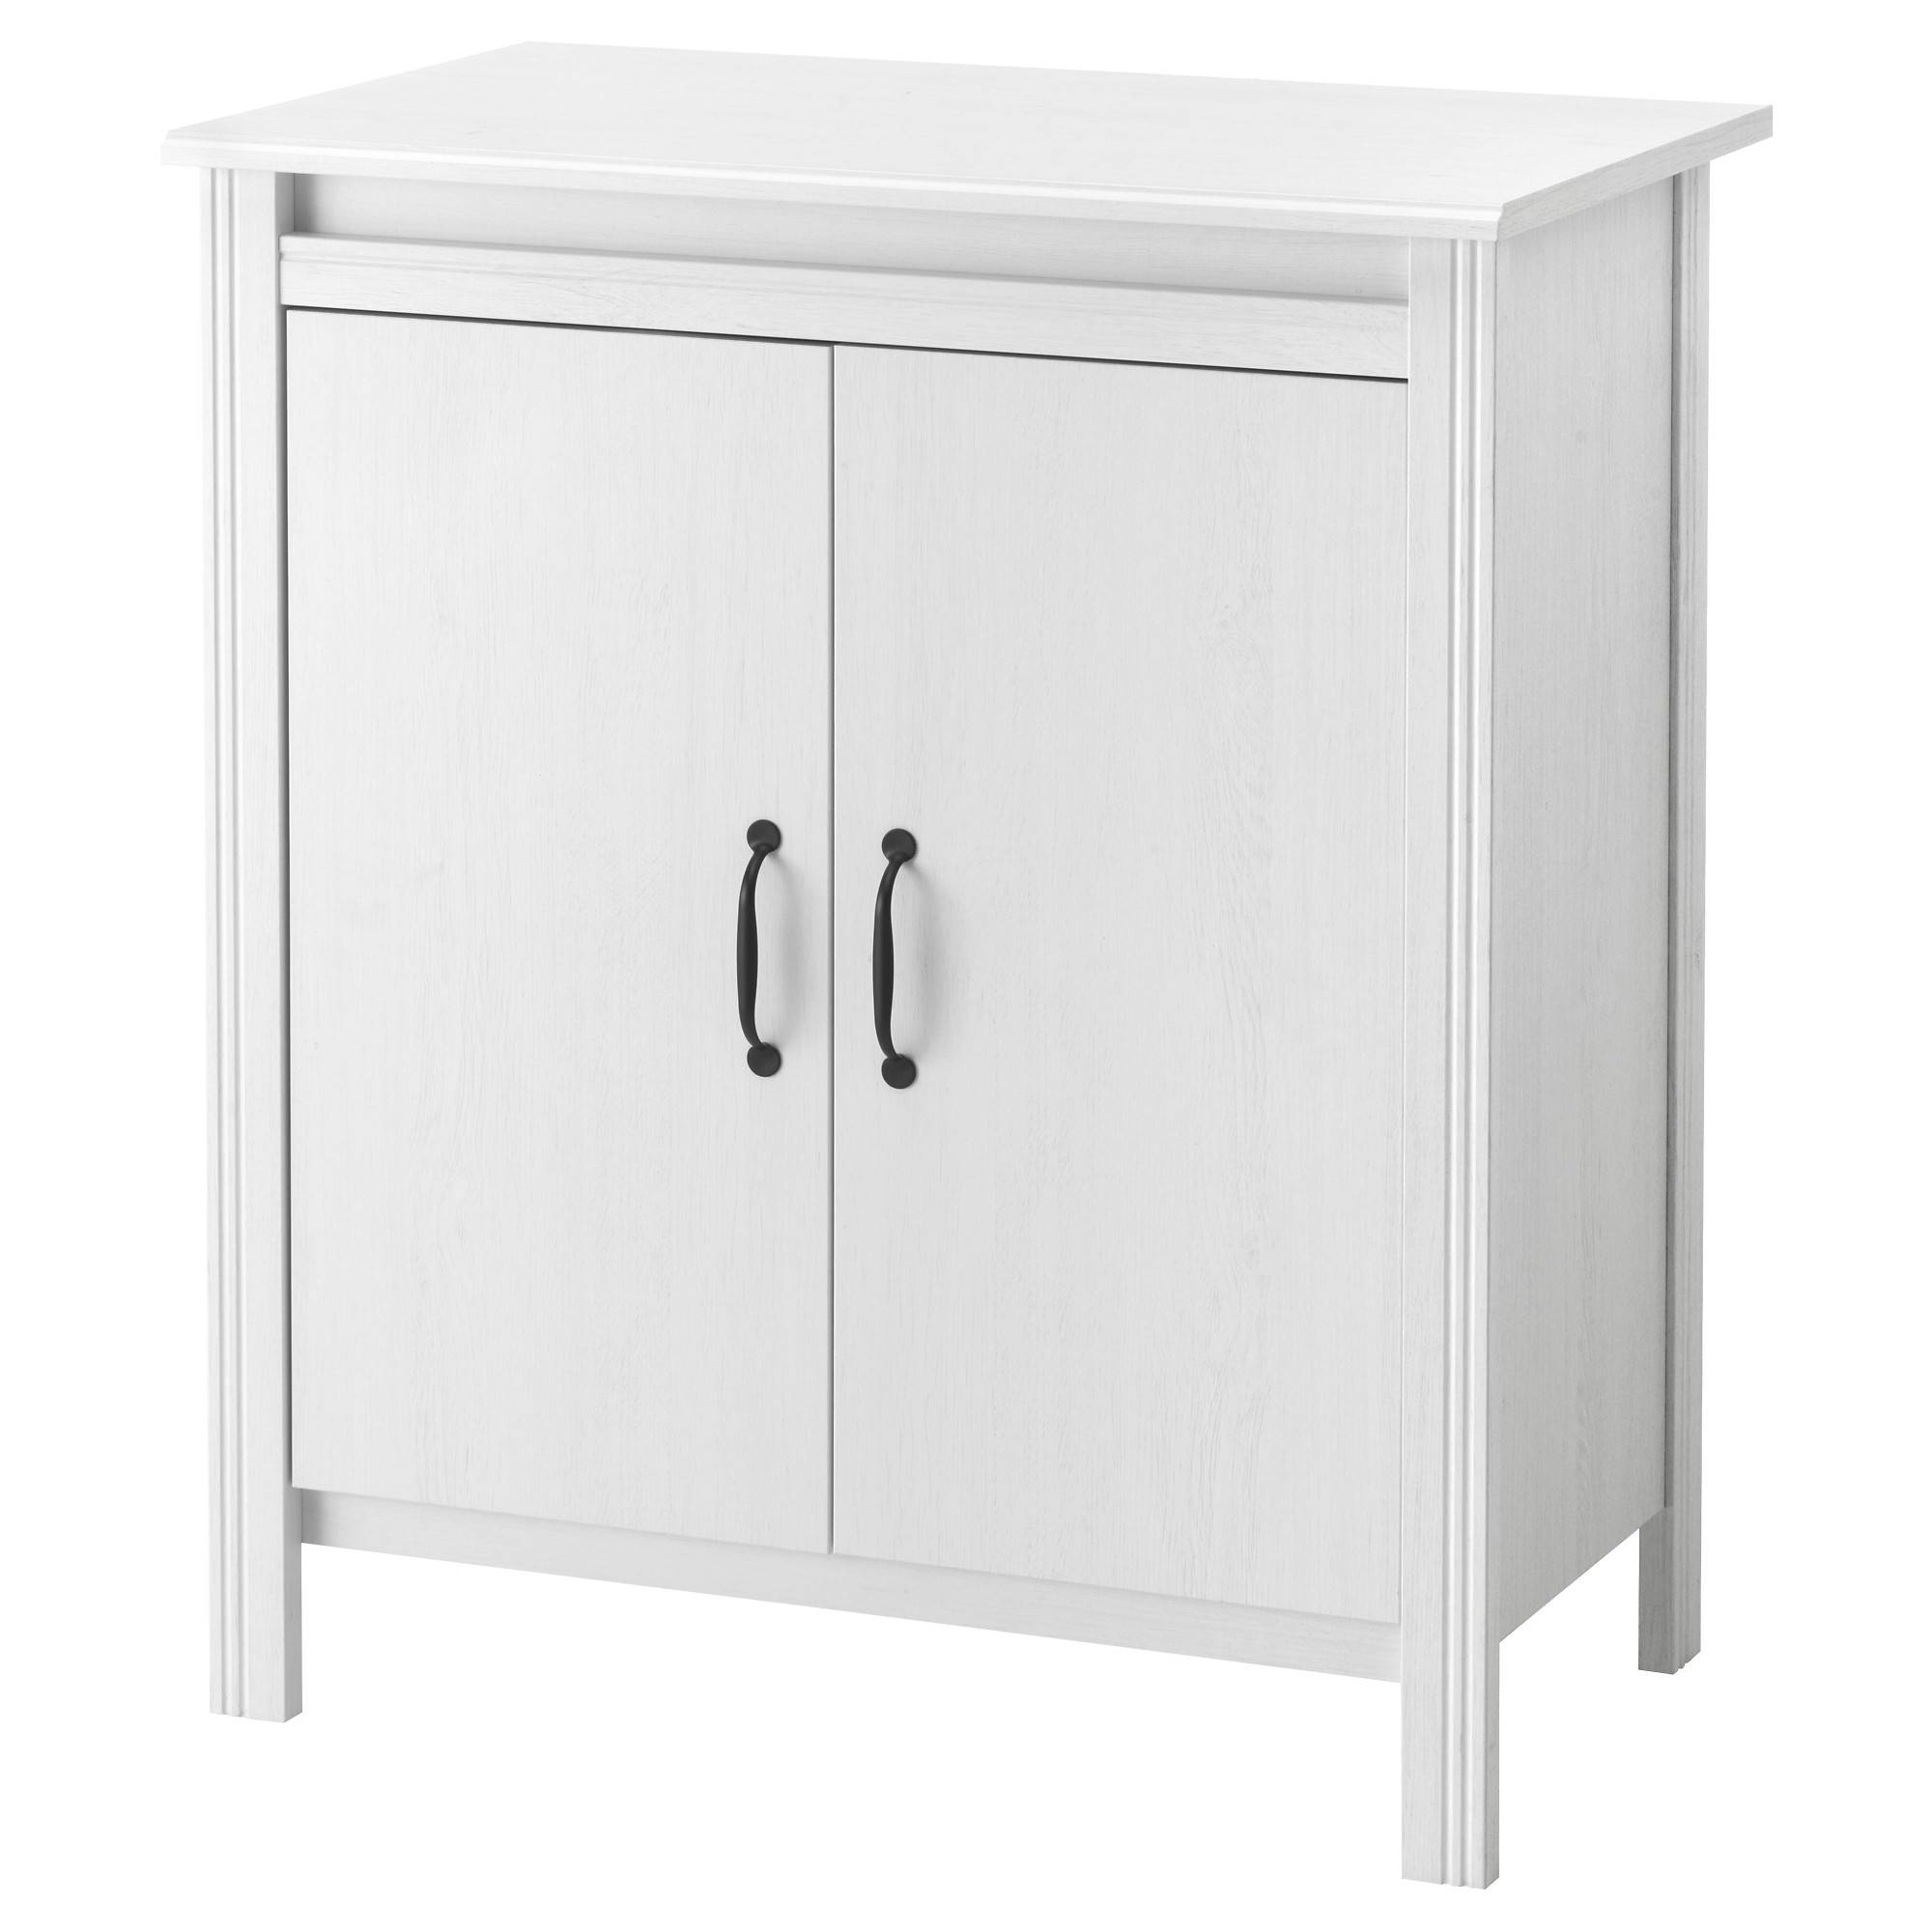 Cabinets & Sideboards – Ikea Intended For Shallow Sideboard Cabinets (#4 of 15)